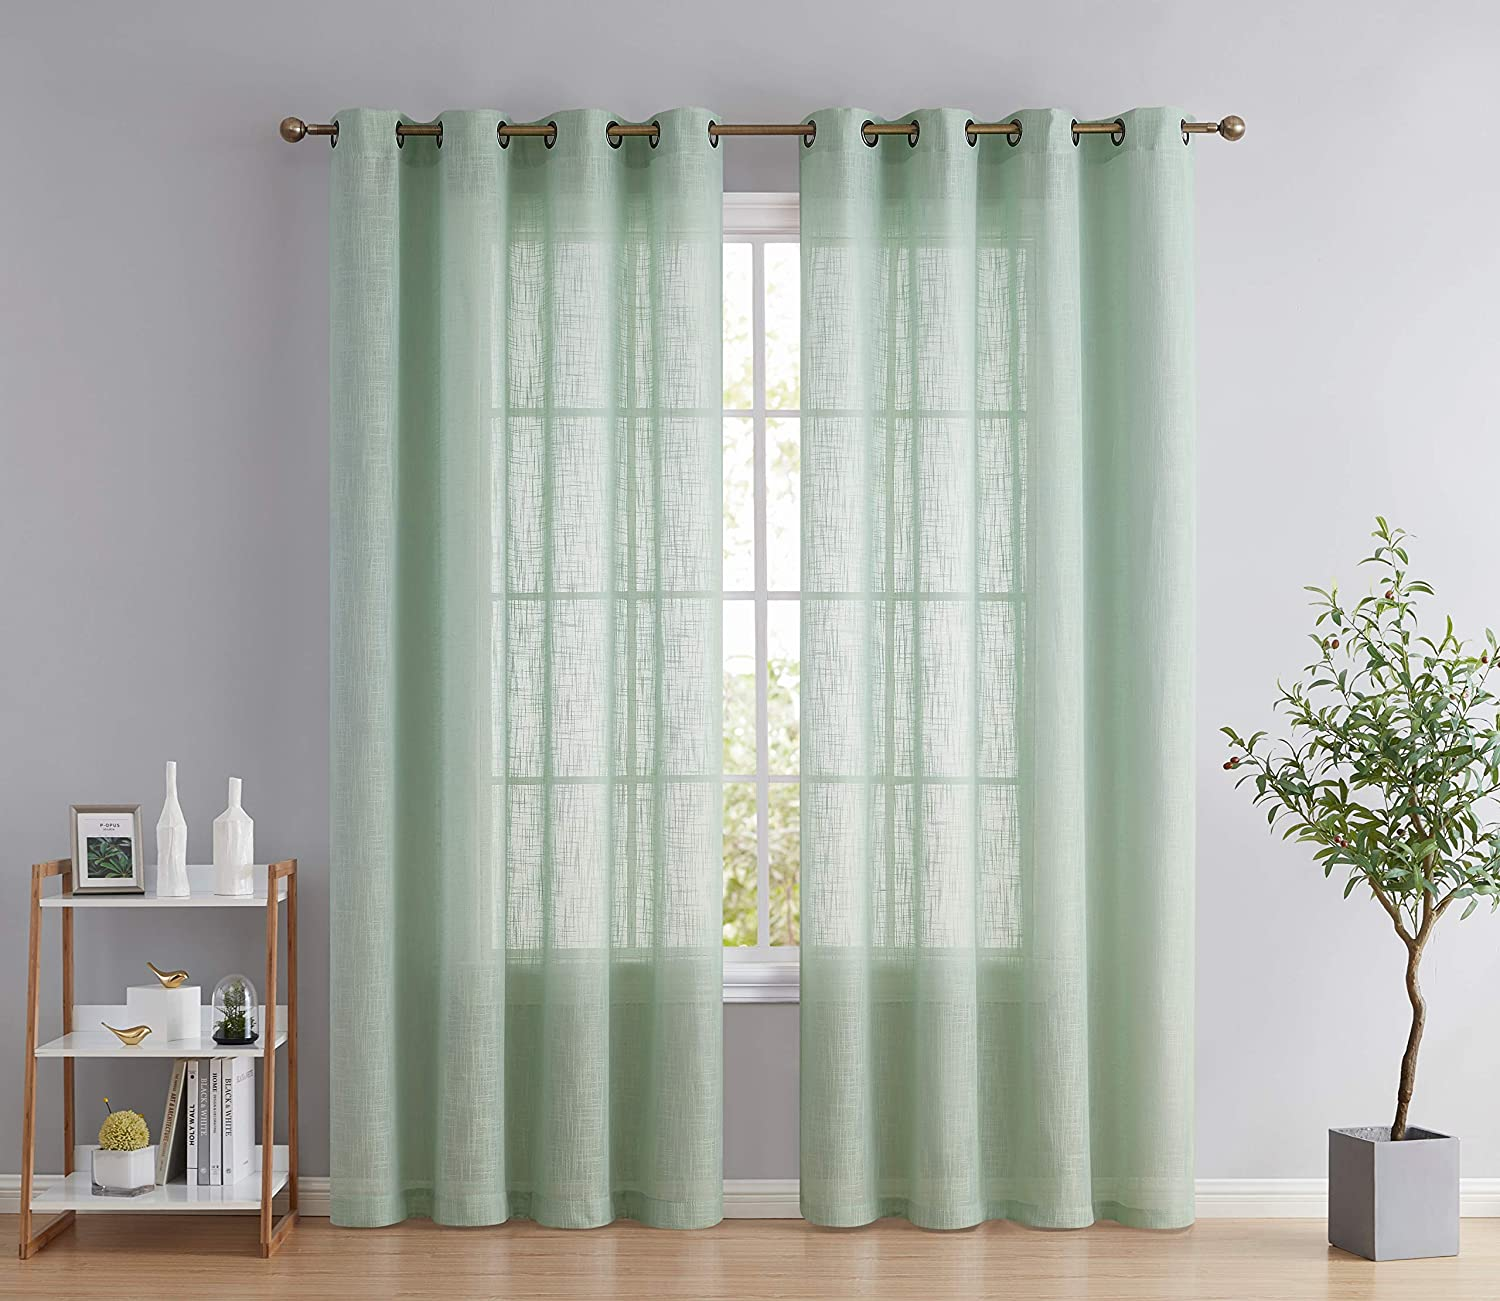 HLC.ME Abbey Faux Linen Textured Semi Sheer Privacy Sun Light Filtering Transparent Window Grommet Long Thick Curtains Drapery Panels for Bedroom & Living Room, 2 Panels (54 W x 96 L, Seafoam Green)